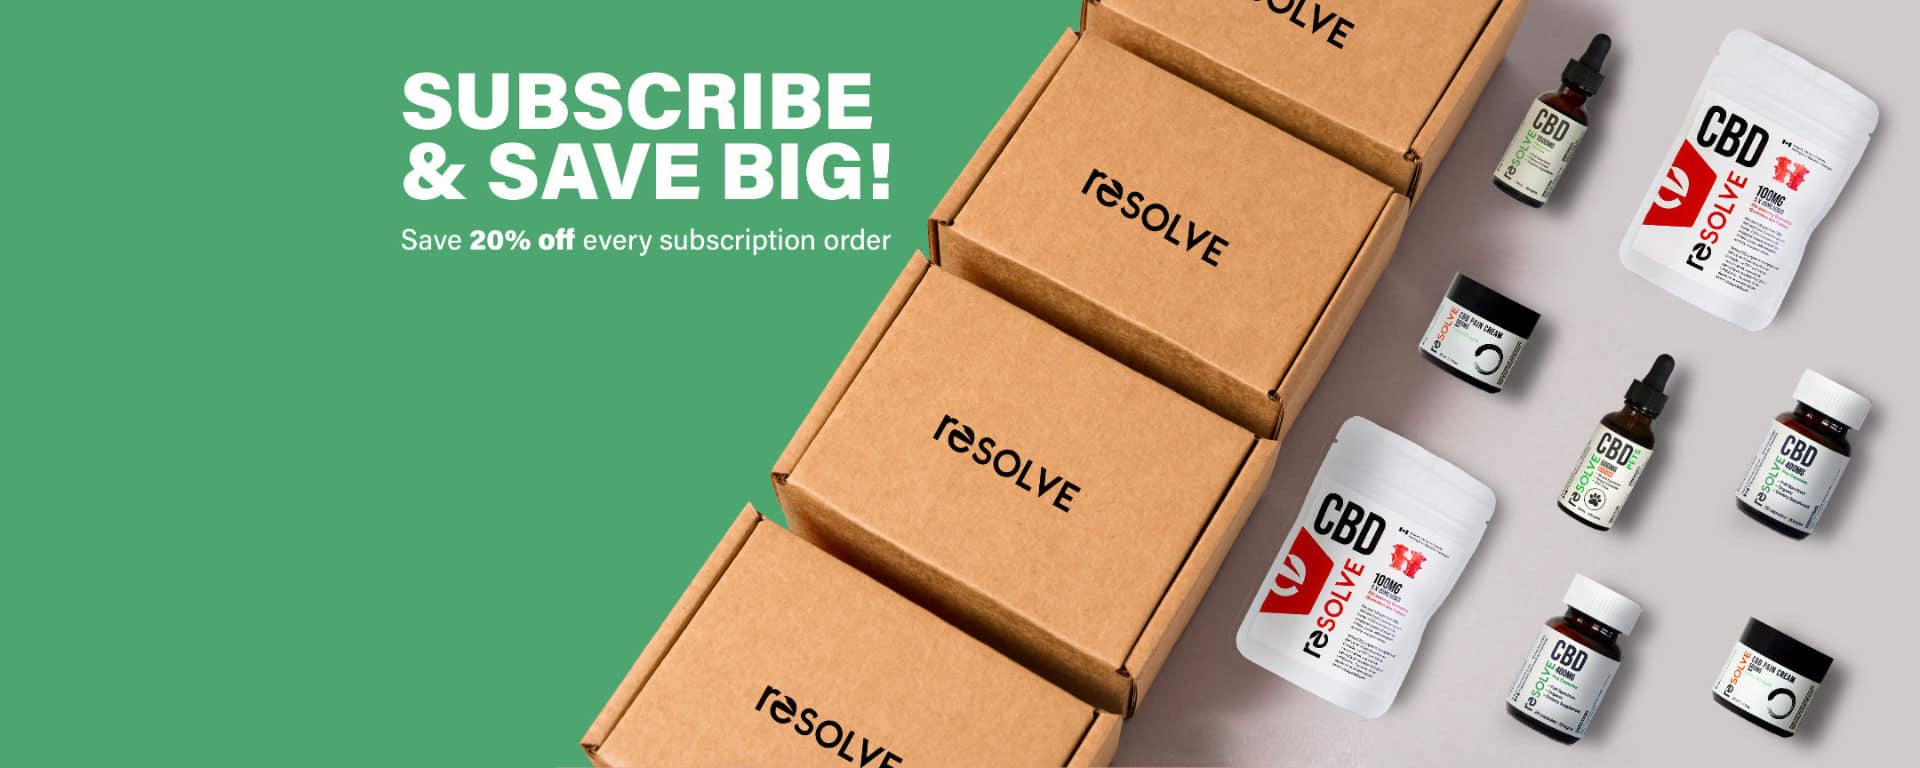 subscribe and save resolve cbd subscriptions